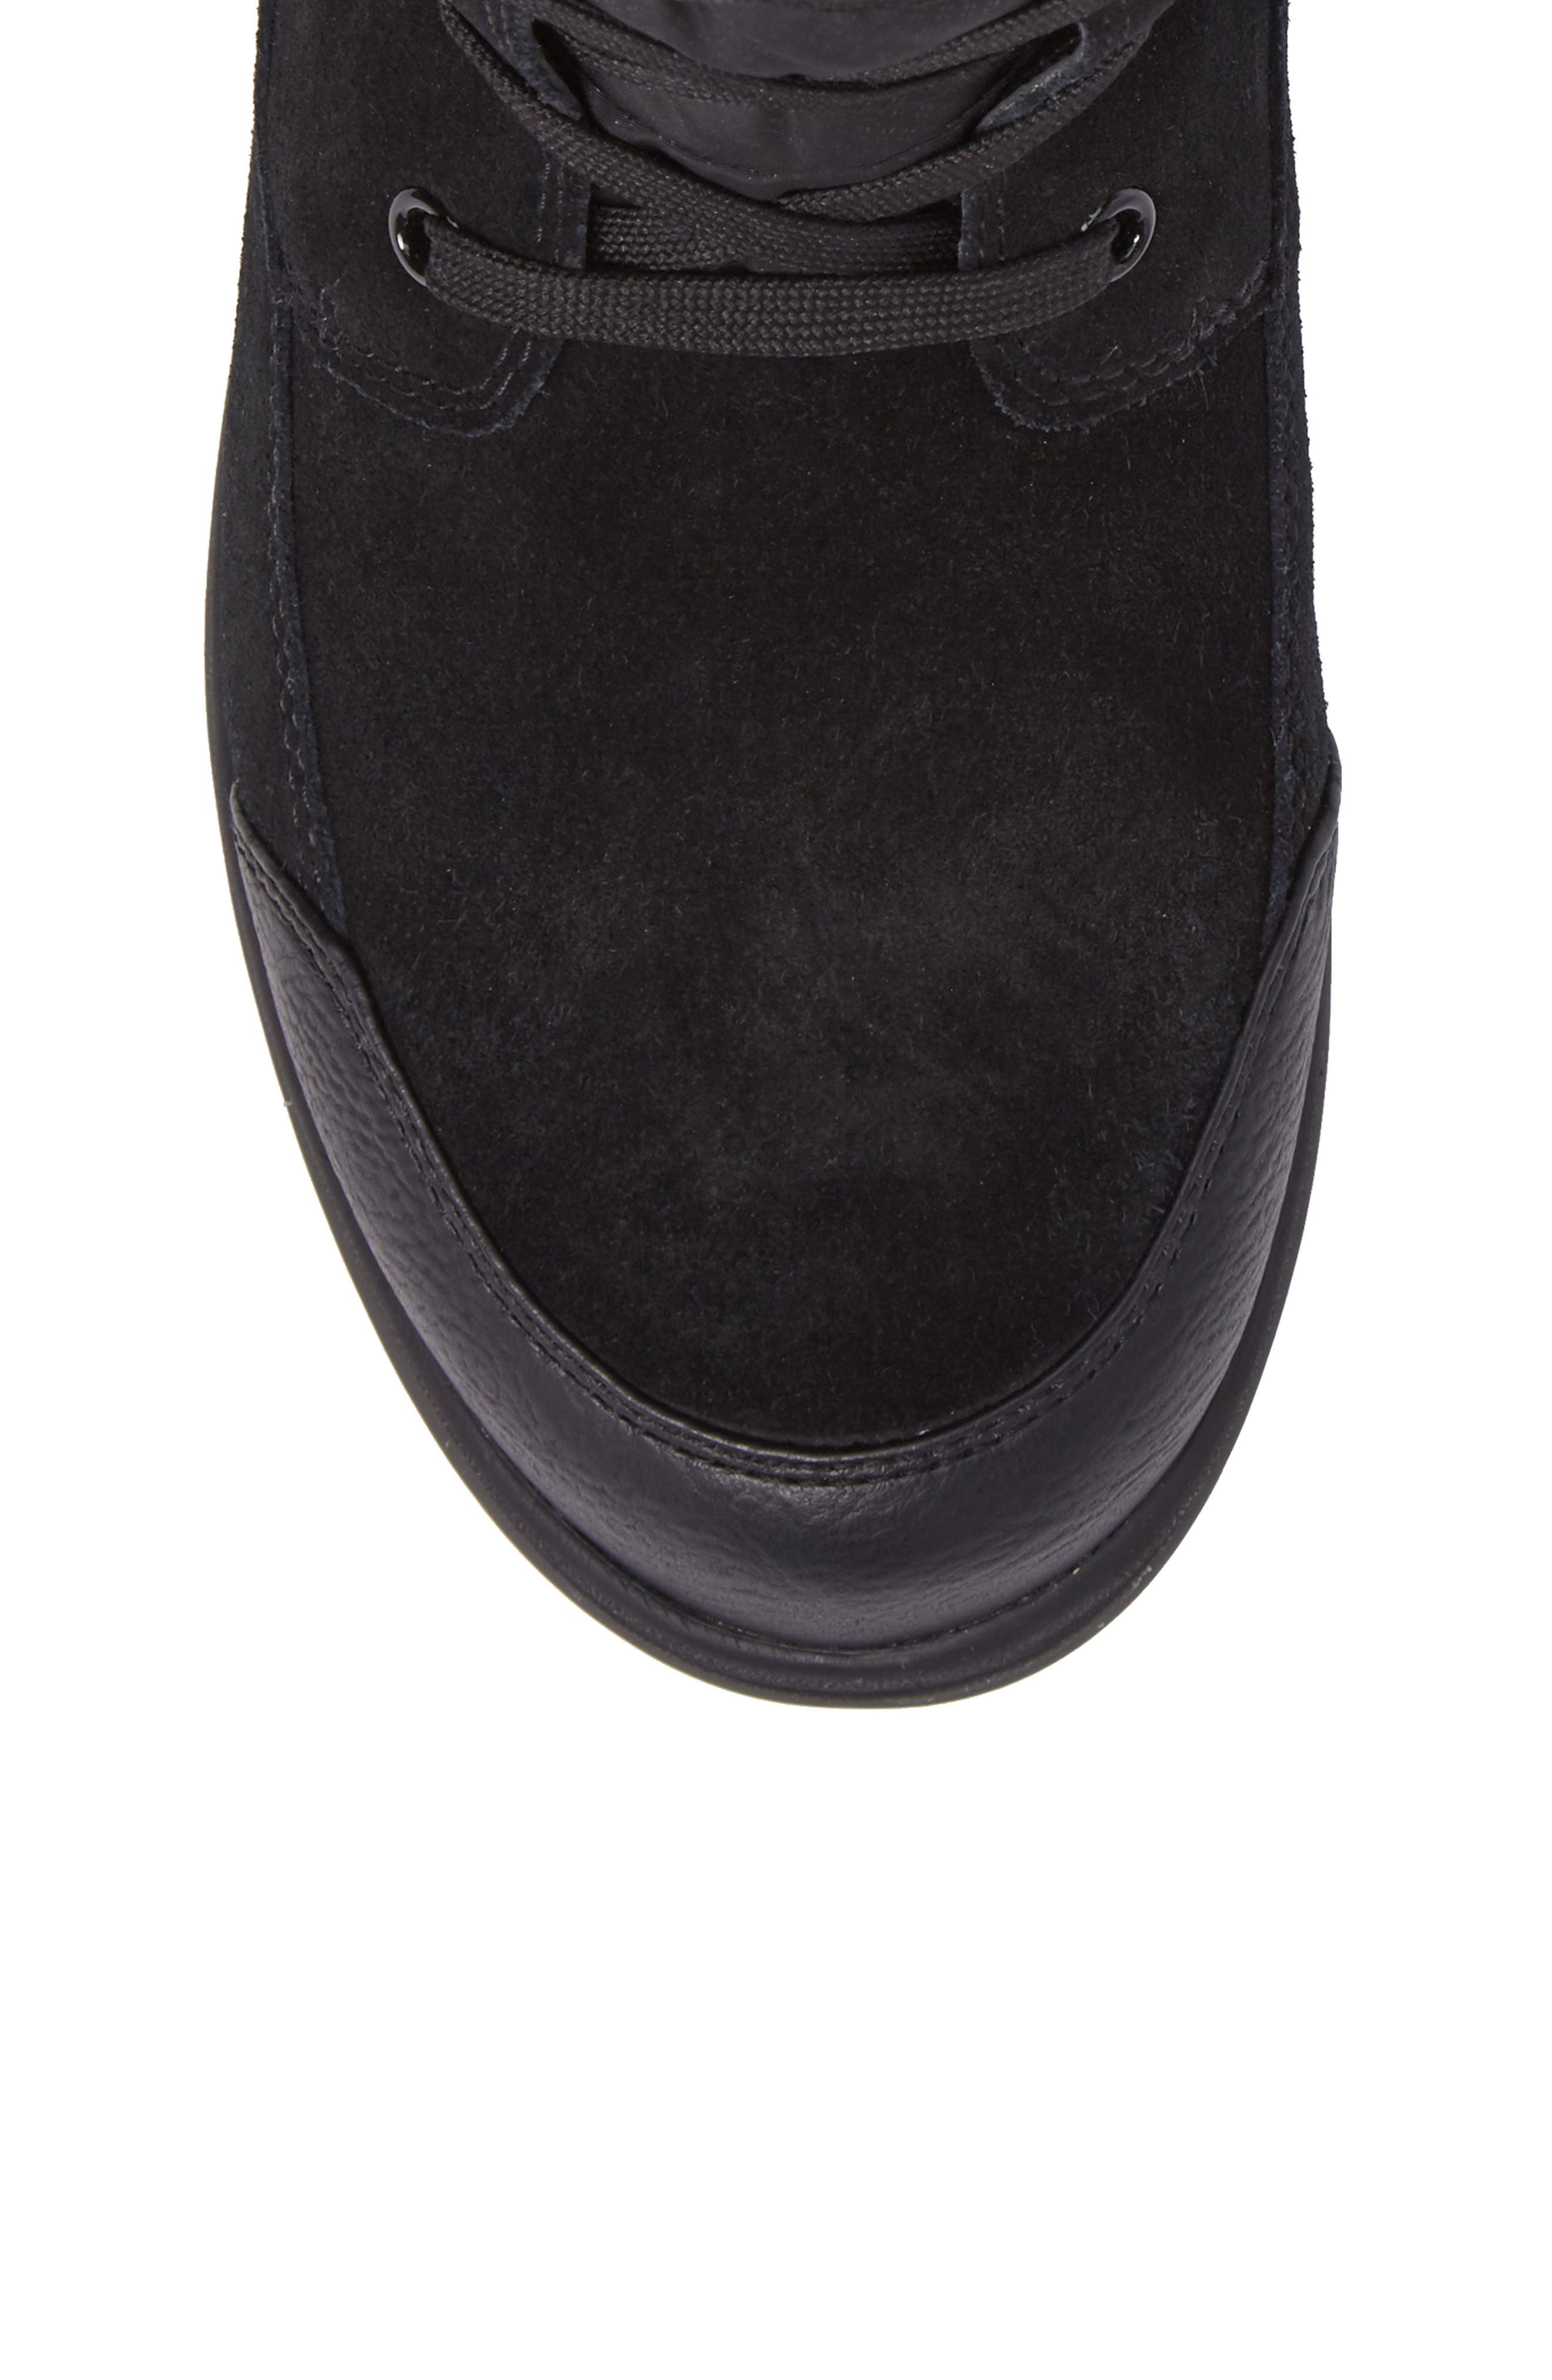 QuincyS Waterproof Boot,                             Alternate thumbnail 5, color,                             BLACK FABRIC